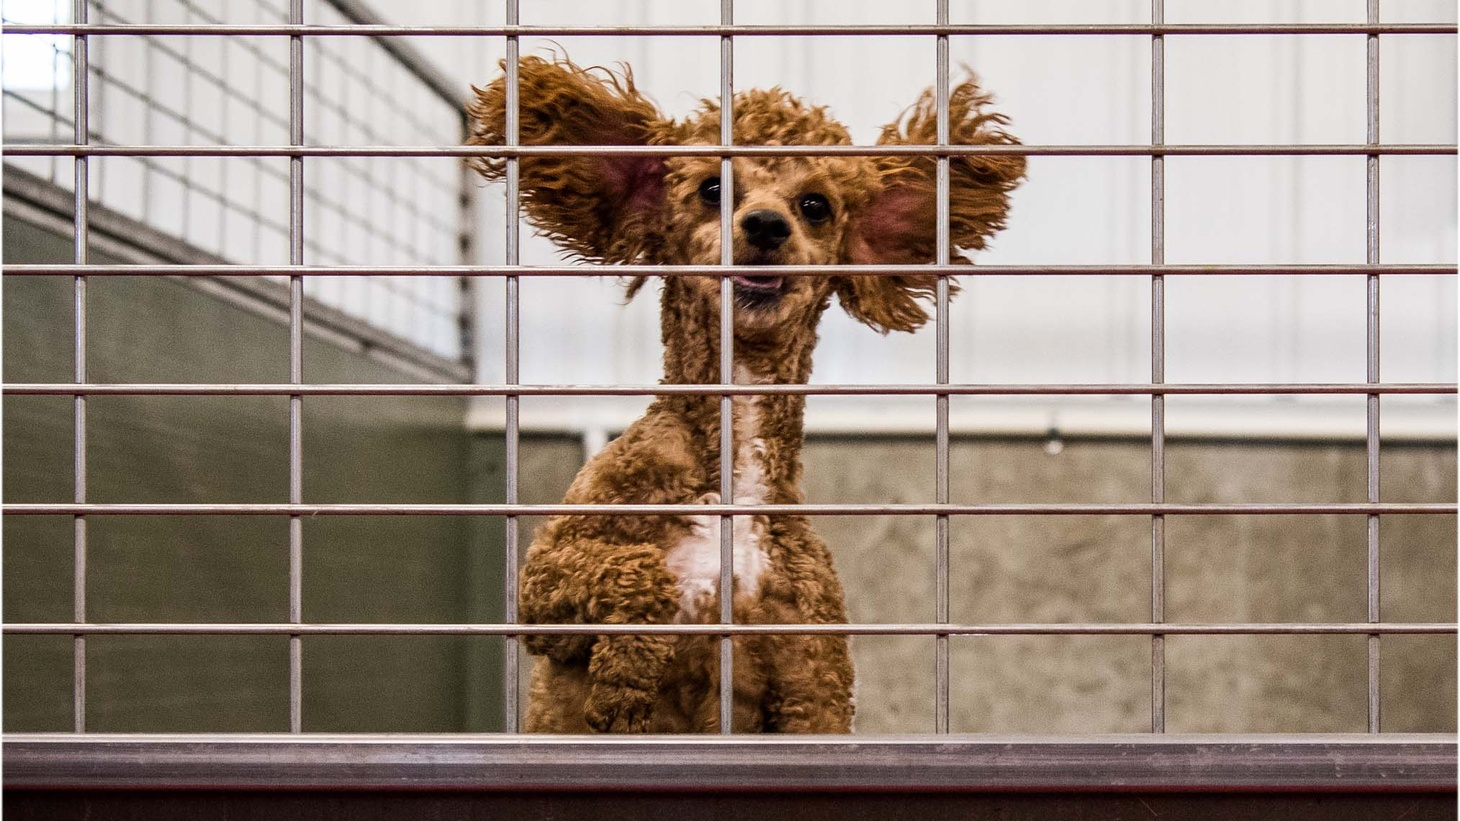 Dog rescue groups have long denounced commercial breeders for mistreating animals.